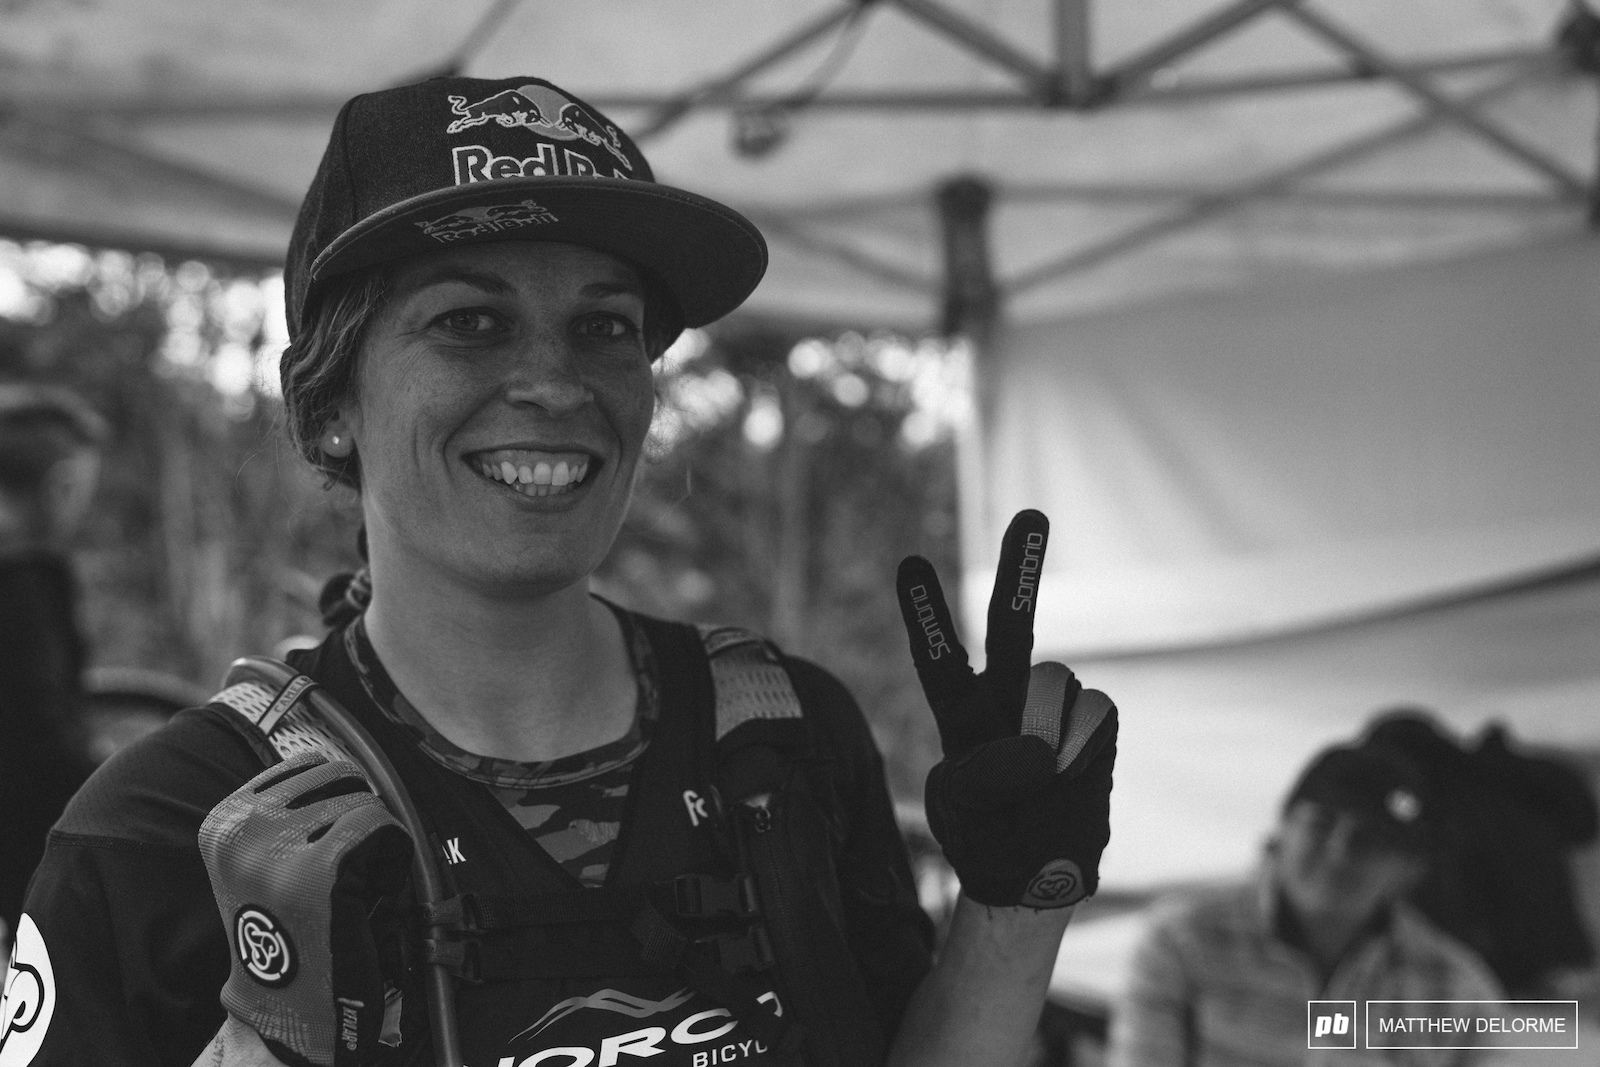 1st EWS and a second place. Jill Kintner has something to smile about.